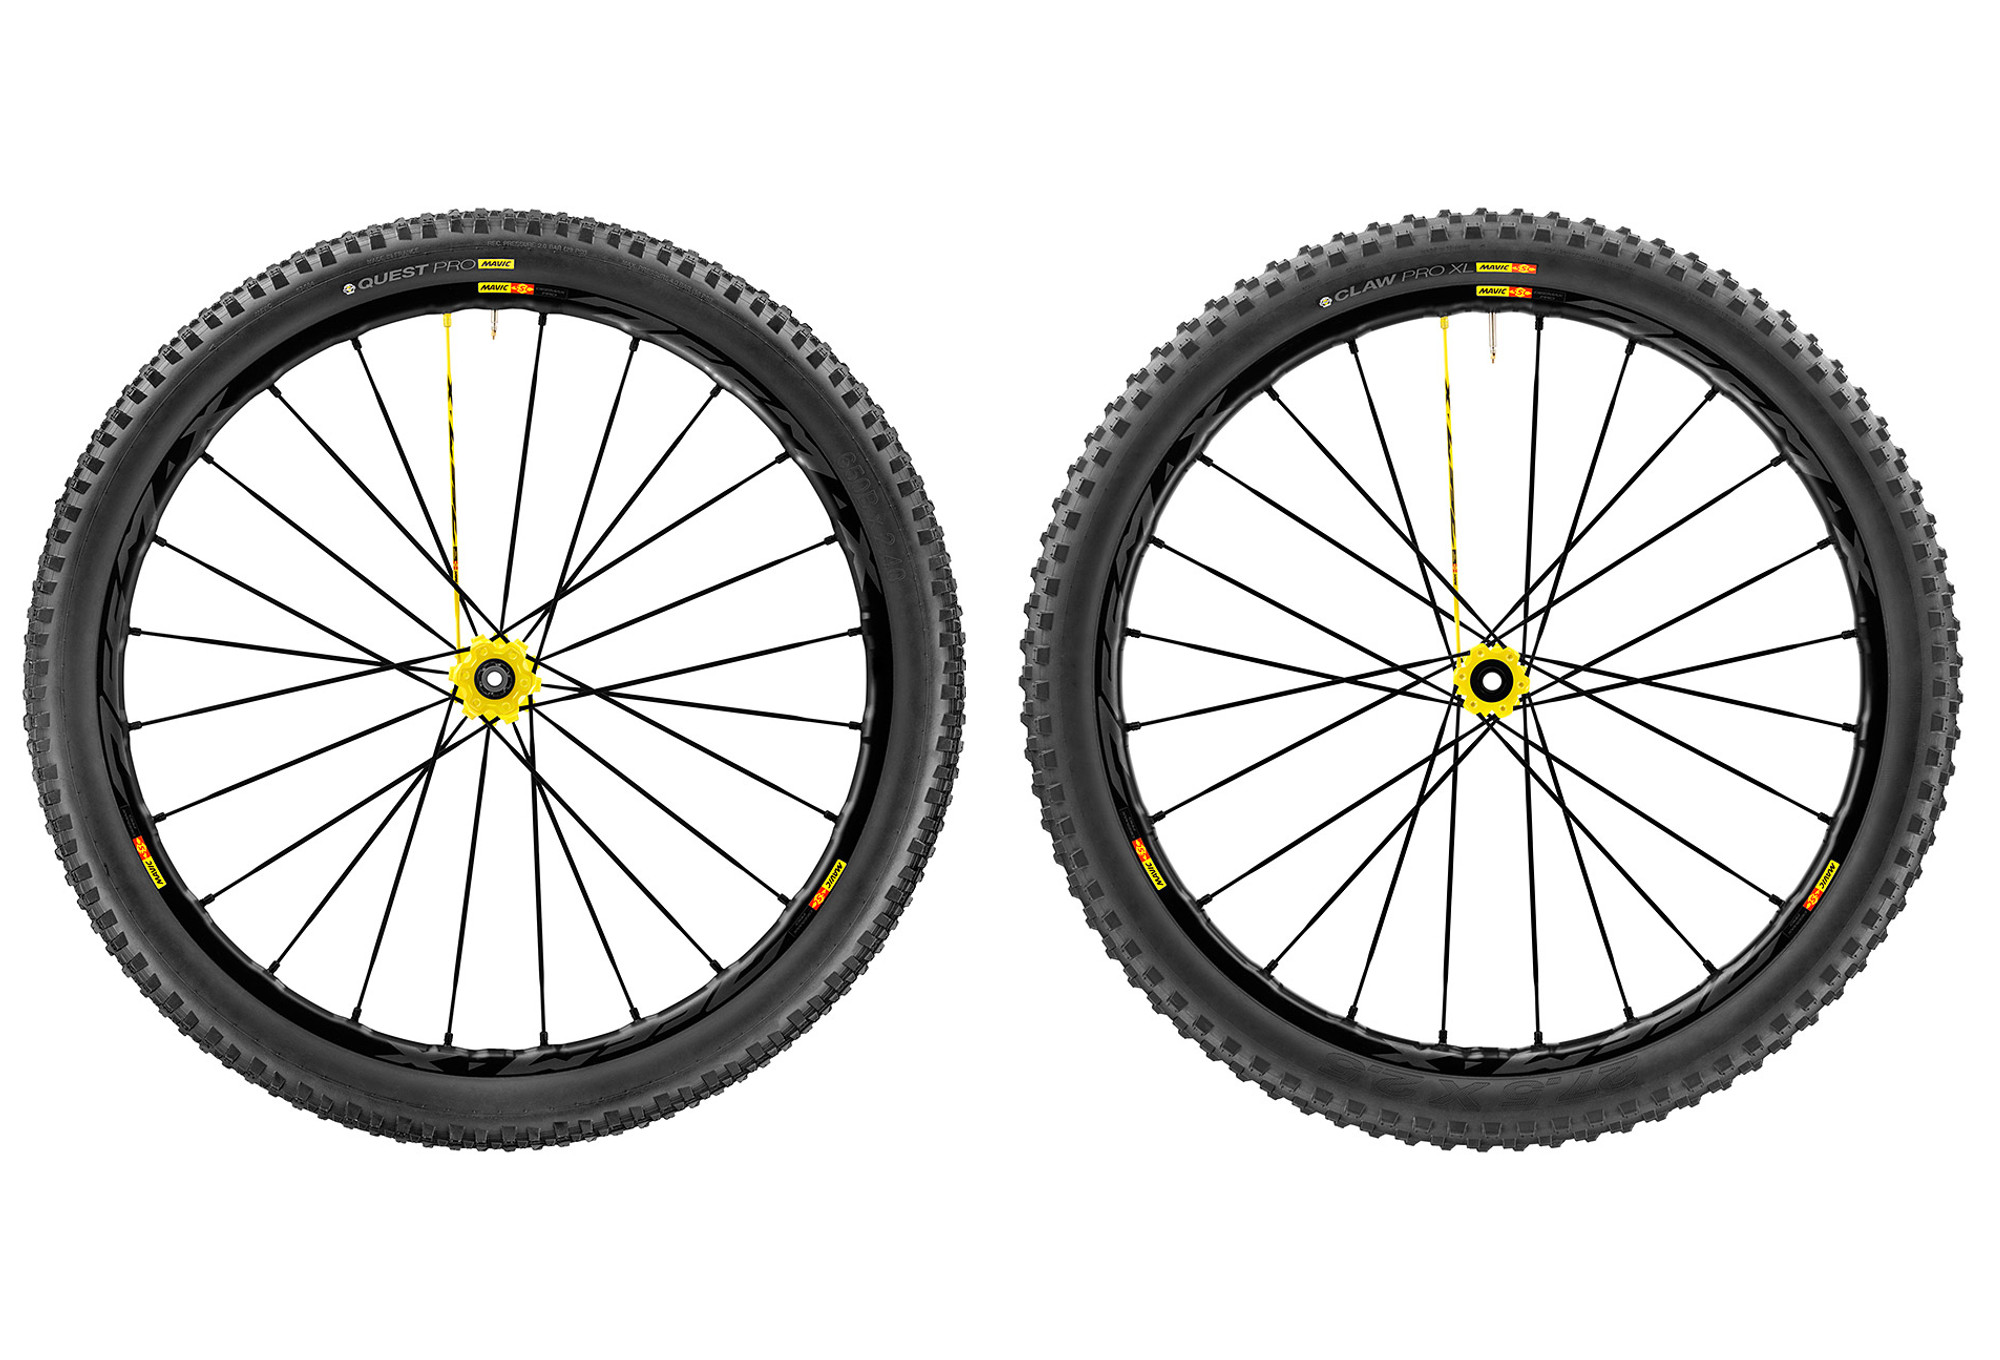 9e7983ed5ad MAVIC Wheelset 2017 Deemax Pro WTS 27.5 | Boost 15x110mm | 12x148mm | Body  Shimano/Sram | Alltricks.com